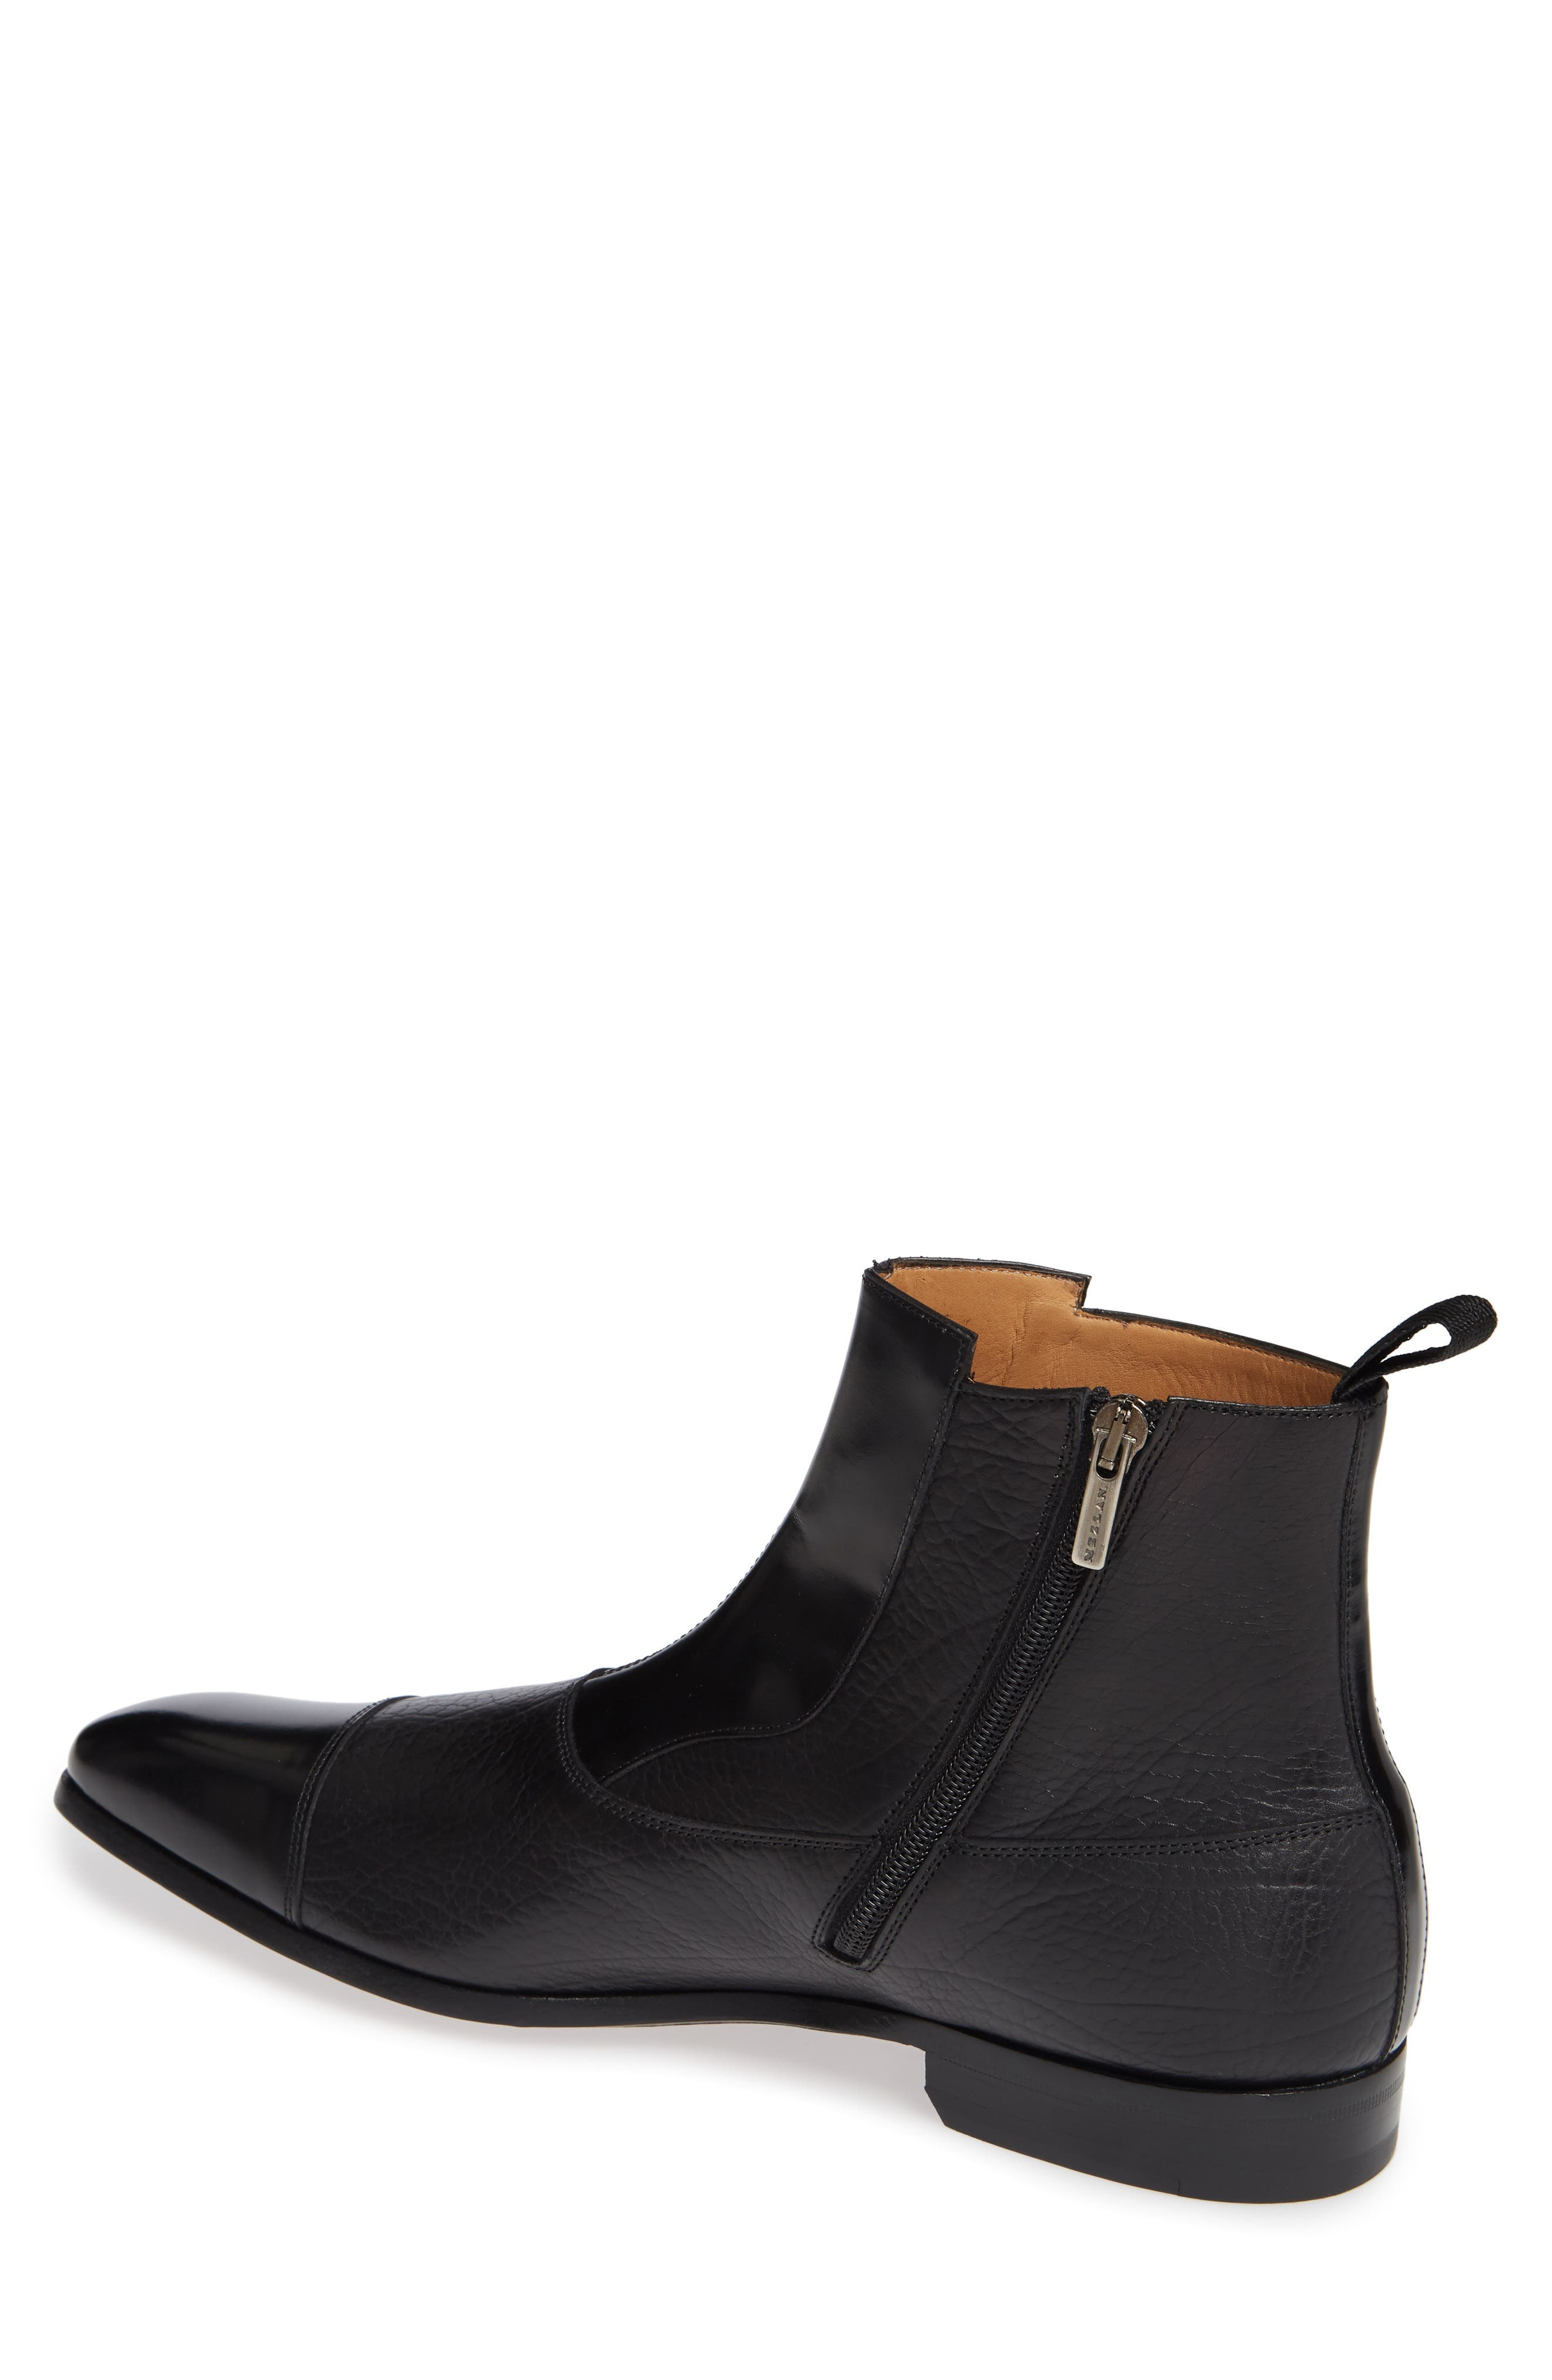 Tracy Double Buckle Cap Toe Boot,                             Alternate thumbnail 2, color,                             BLACK LEATHER